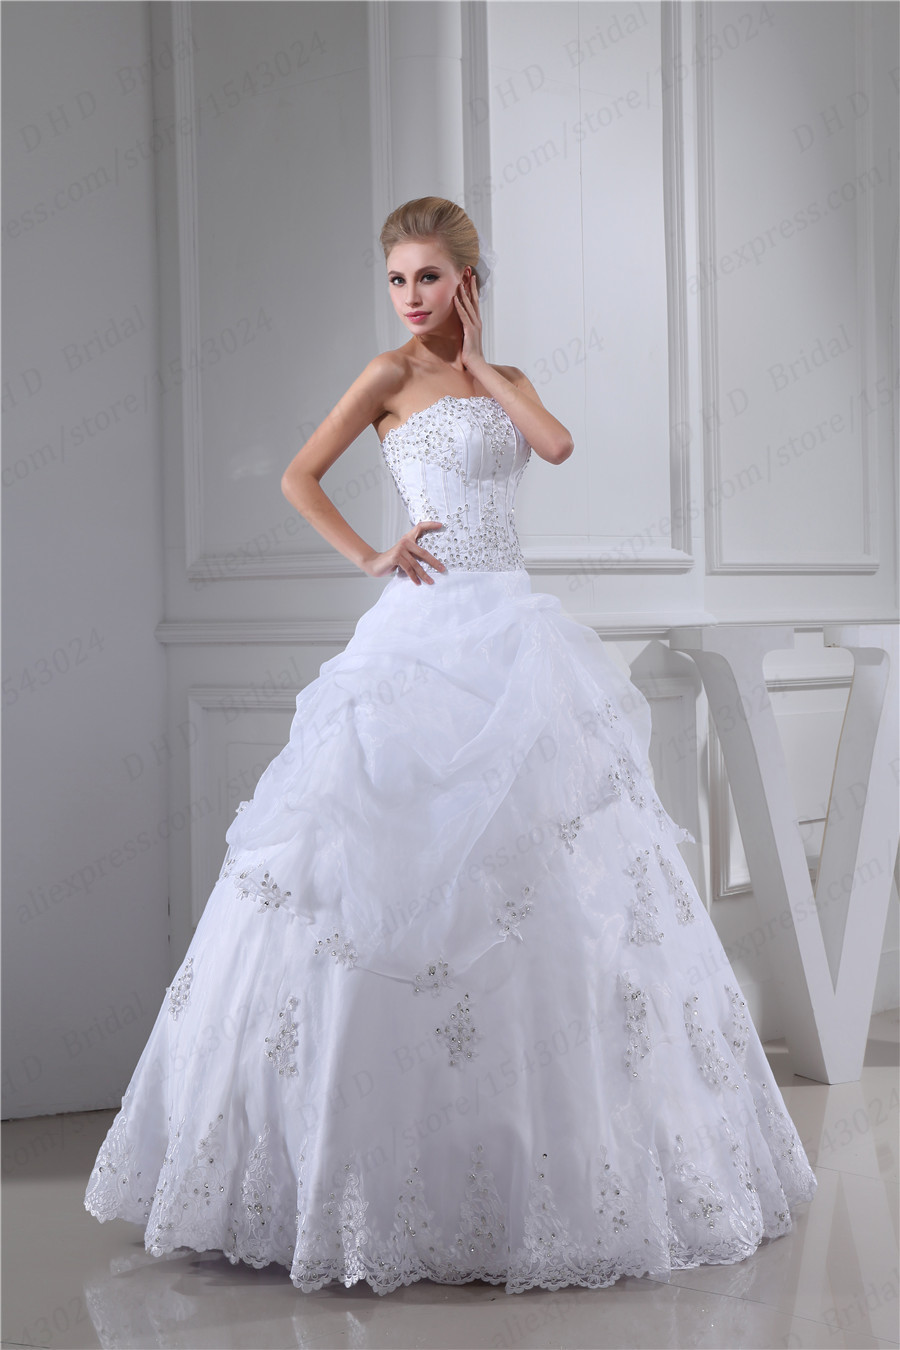 Perfect Looking Elegant Ball Gown Strapless Lace Beaded Organza Lace-up Floor Length Wedding Dress Gown(China (Mainland))